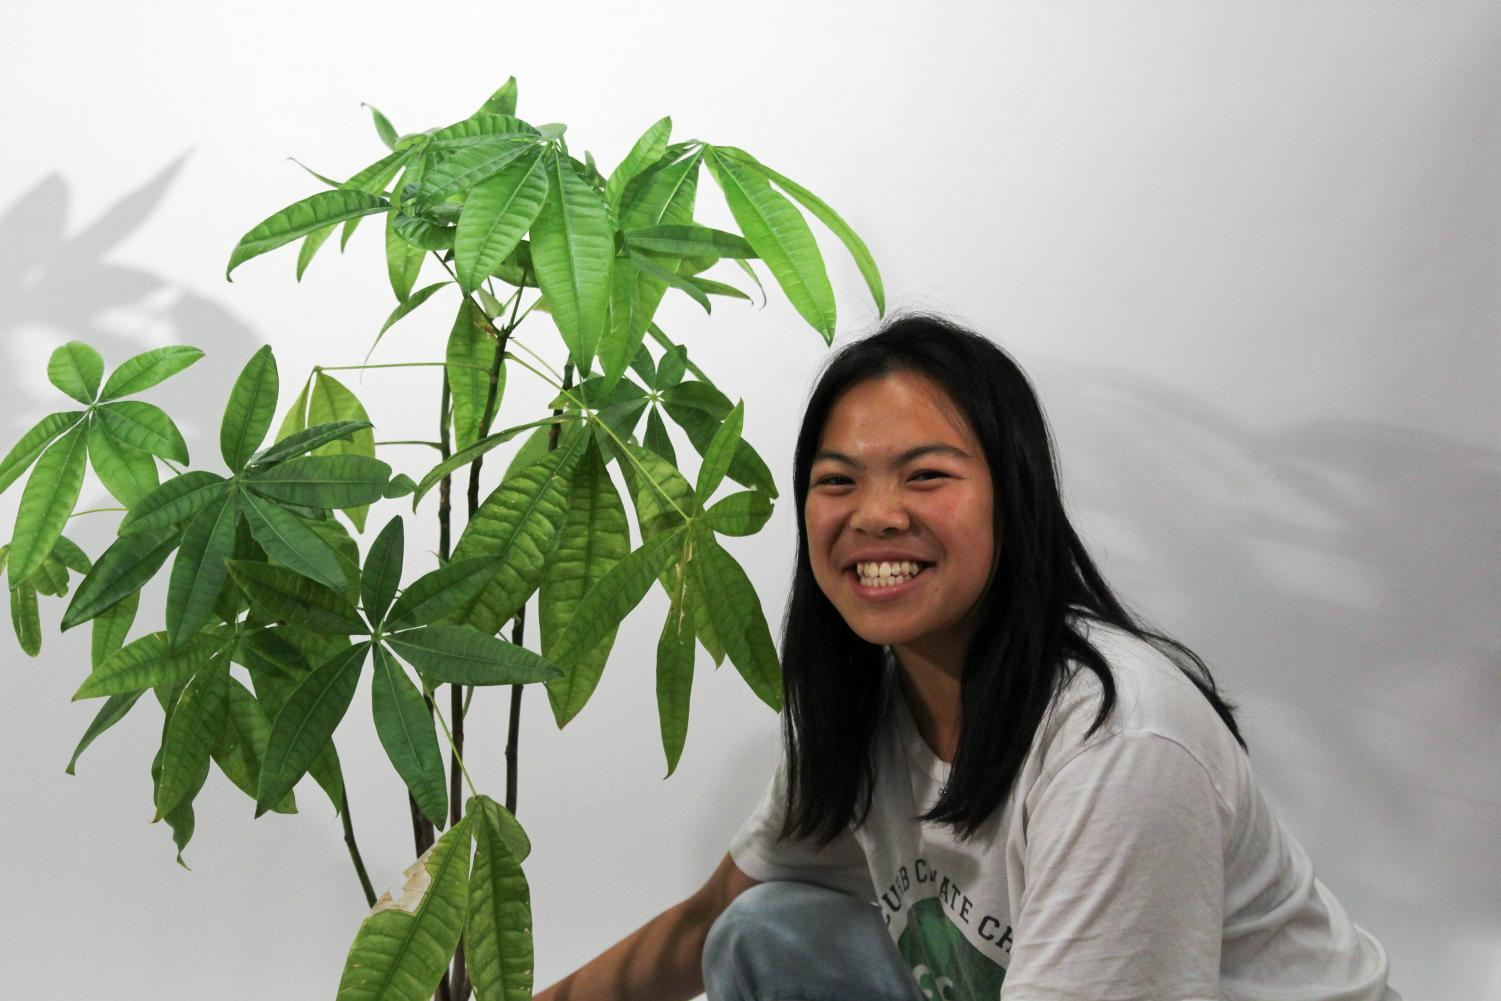 ECO Club president Kristen Tam poses by a plant